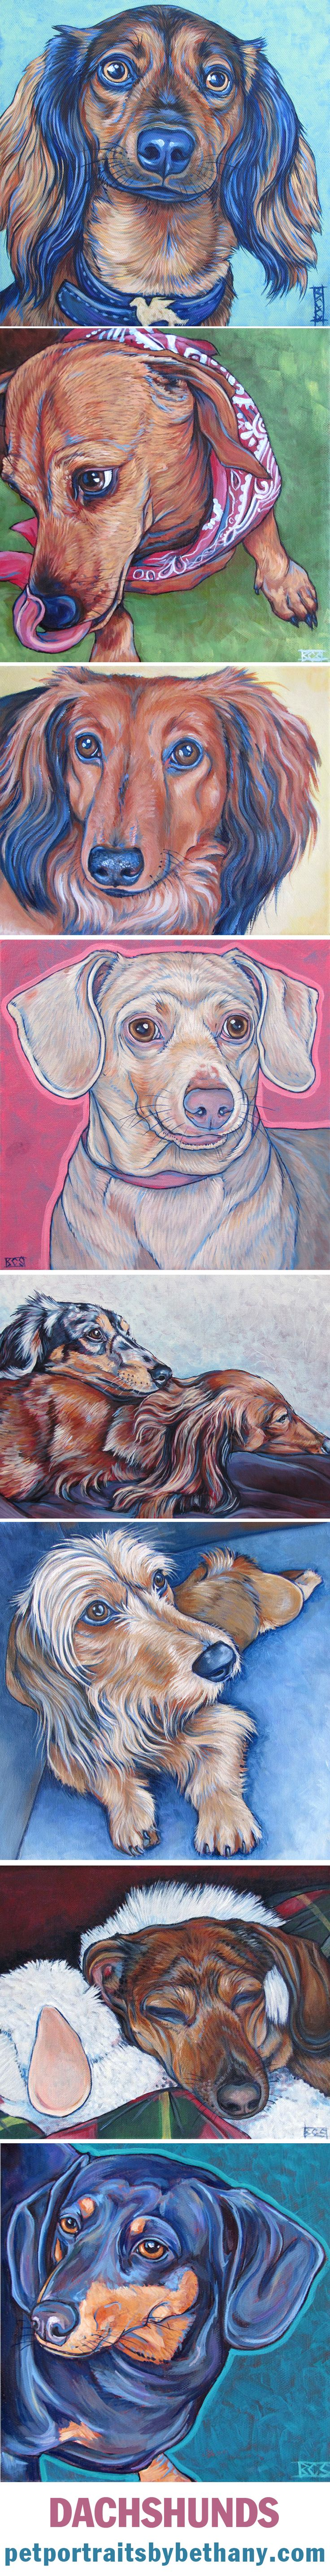 Dachshund Dogs Custom Pet Portrait Paintings in Acrylic Paint on Canvas from Pet Portraits by Bethany.